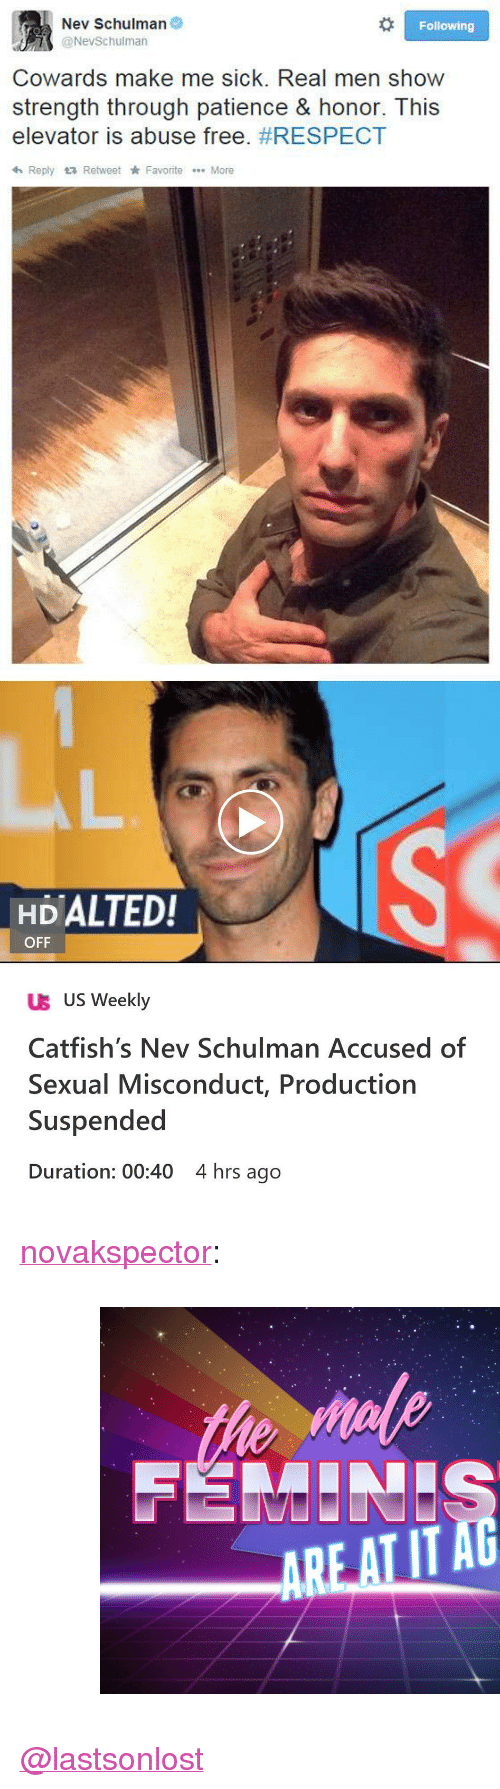 """Respect, Tumblr, and Blog: Nev Schulman  @NevSchulman  Following  Cowards make me sick. Real men show  strength through patience & honor. This  elevator is abuse free. #RESPECT  h Reply Retweet Favorite More   HDALTED!  OFF  UB US Weekly  Catfish's Nev Schulman Accused of  Sexual Misconduct, Production  Suspended  Duration: 00:40 4 hrs ago <p><a href=""""http://novakspector.tumblr.com/post/174005481234"""" class=""""tumblr_blog"""">novakspector</a>:</p><blockquote><figure class=""""tmblr-full"""" data-orig-height=""""537"""" data-orig-width=""""750""""><img src=""""https://78.media.tumblr.com/c25ac69782dcbdb60ec3f7b276e7dc76/tumblr_inline_p8wgq6izIM1r5htxe_540.jpg"""" data-orig-height=""""537"""" data-orig-width=""""750""""/></figure></blockquote>  <p><a class=""""tumblelog"""" href=""""https://tmblr.co/mPxVYxWuKR2CMbqrueo4UEQ"""">@lastsonlost</a> </p>"""